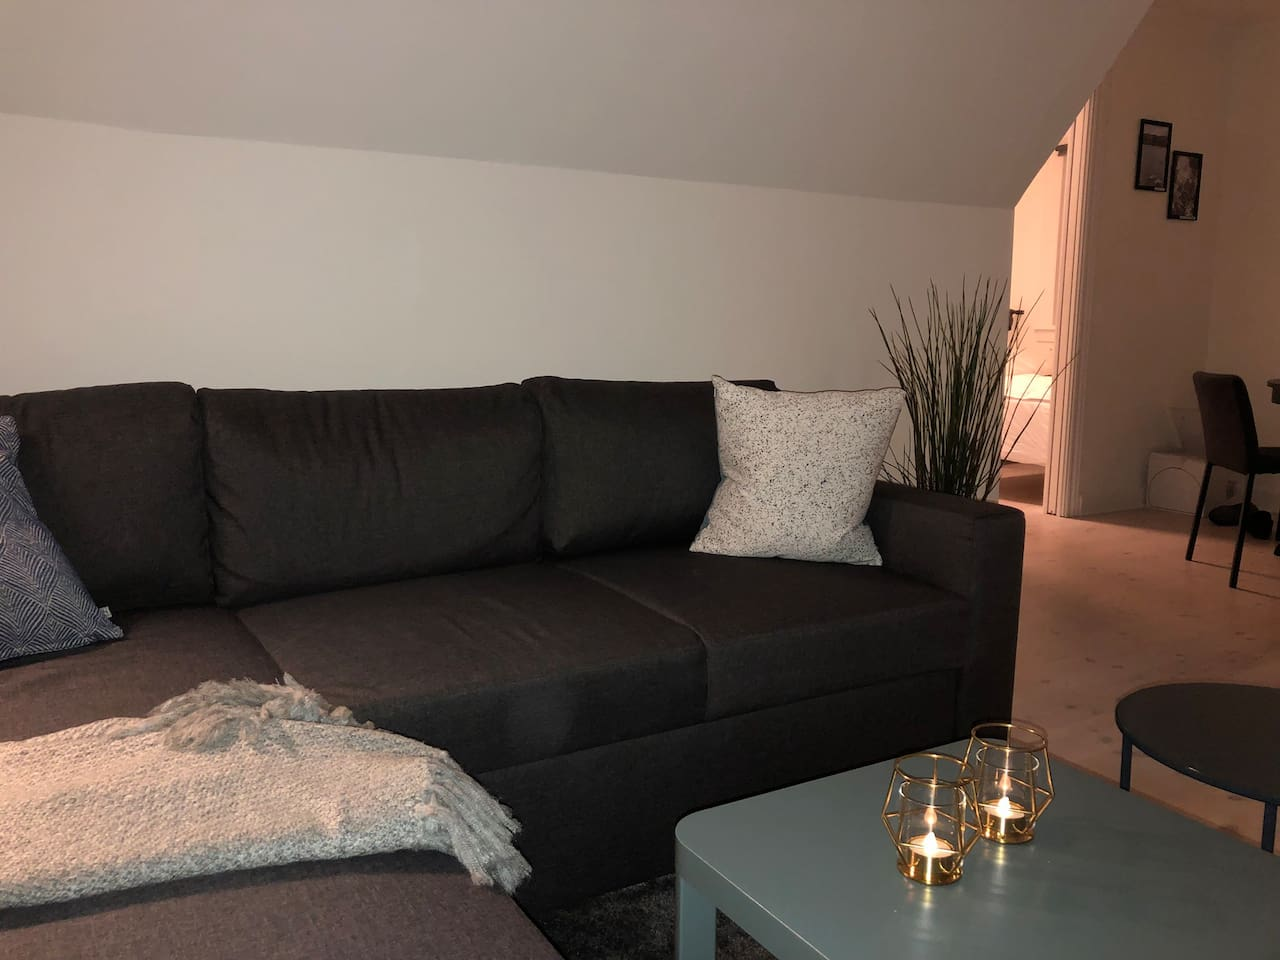 Sofa bed for 2 persons